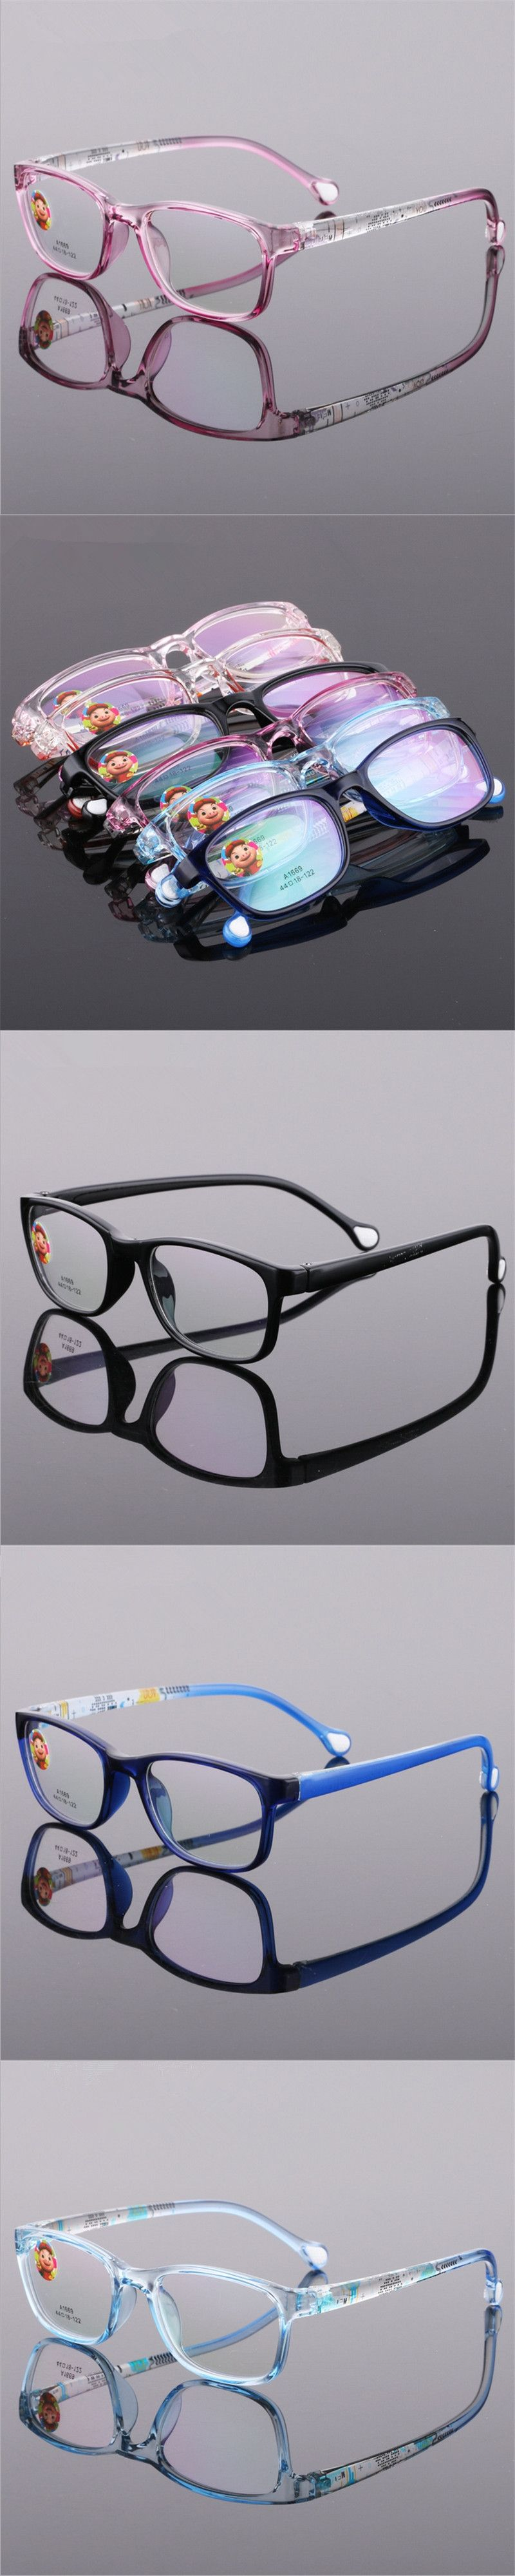 1f9f68ab81 TR90 Glasses Boy Girl Eyeglasses Lightweight Flexible Eyewear Frame  Children Prescription Glasses frame Silicone nose care